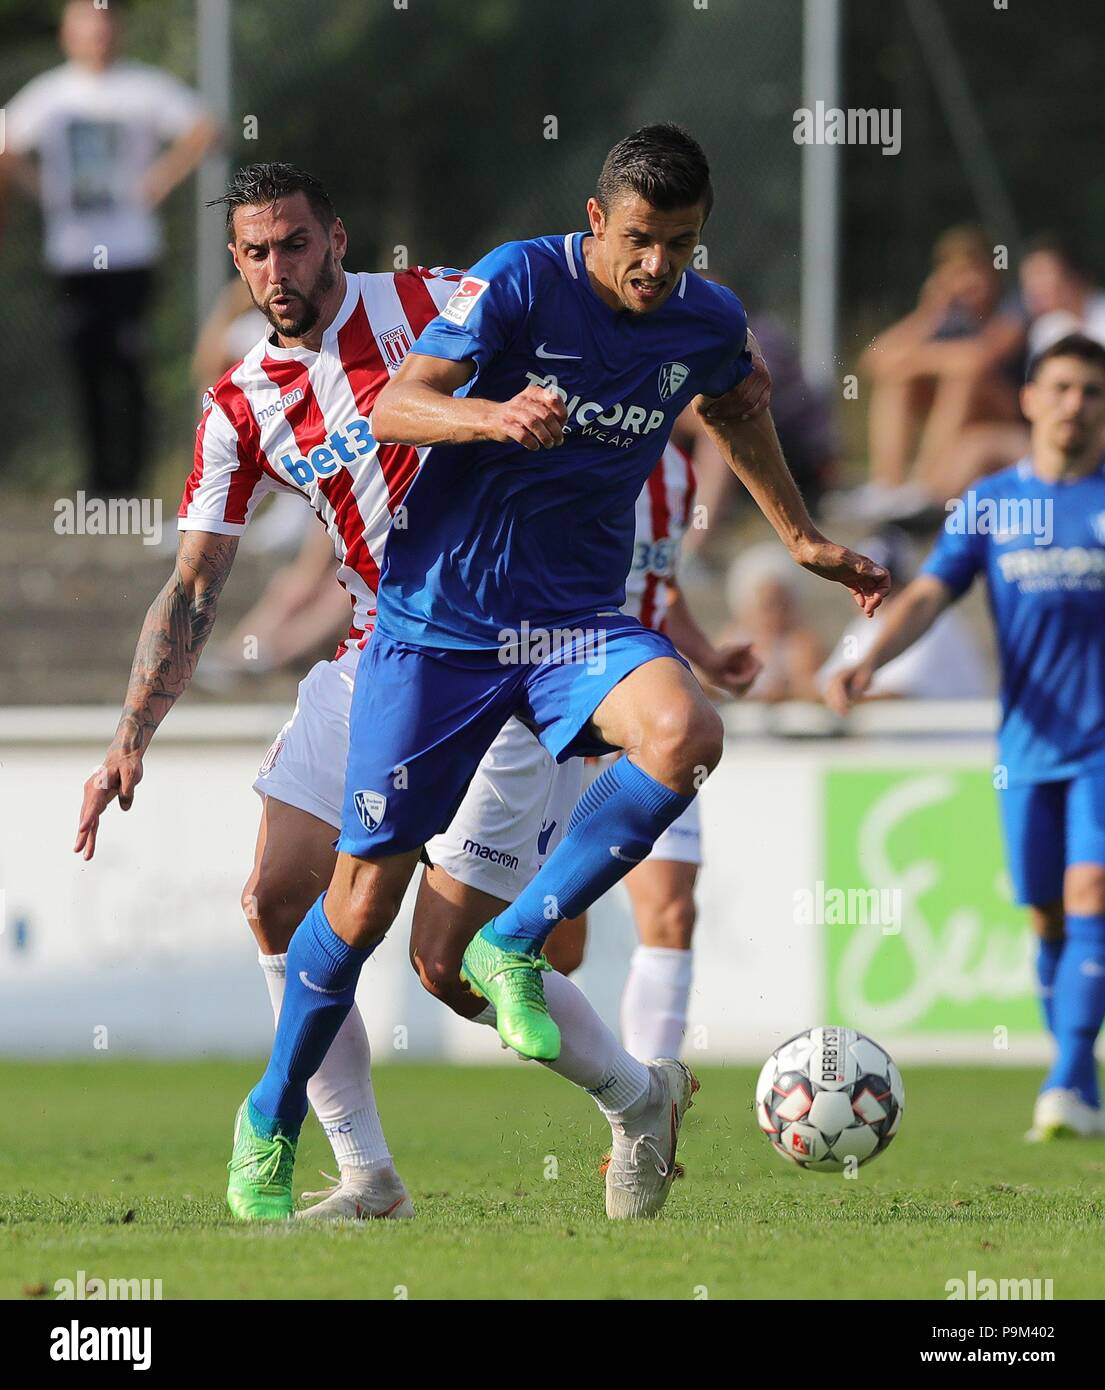 firo: 18.07.2018, Football, 2.Bundesliga, Season 2018/2019, VfL Bochum - Stoke City in Rheine Anthony LOSILLA, Bochum, duels | - Stock Image